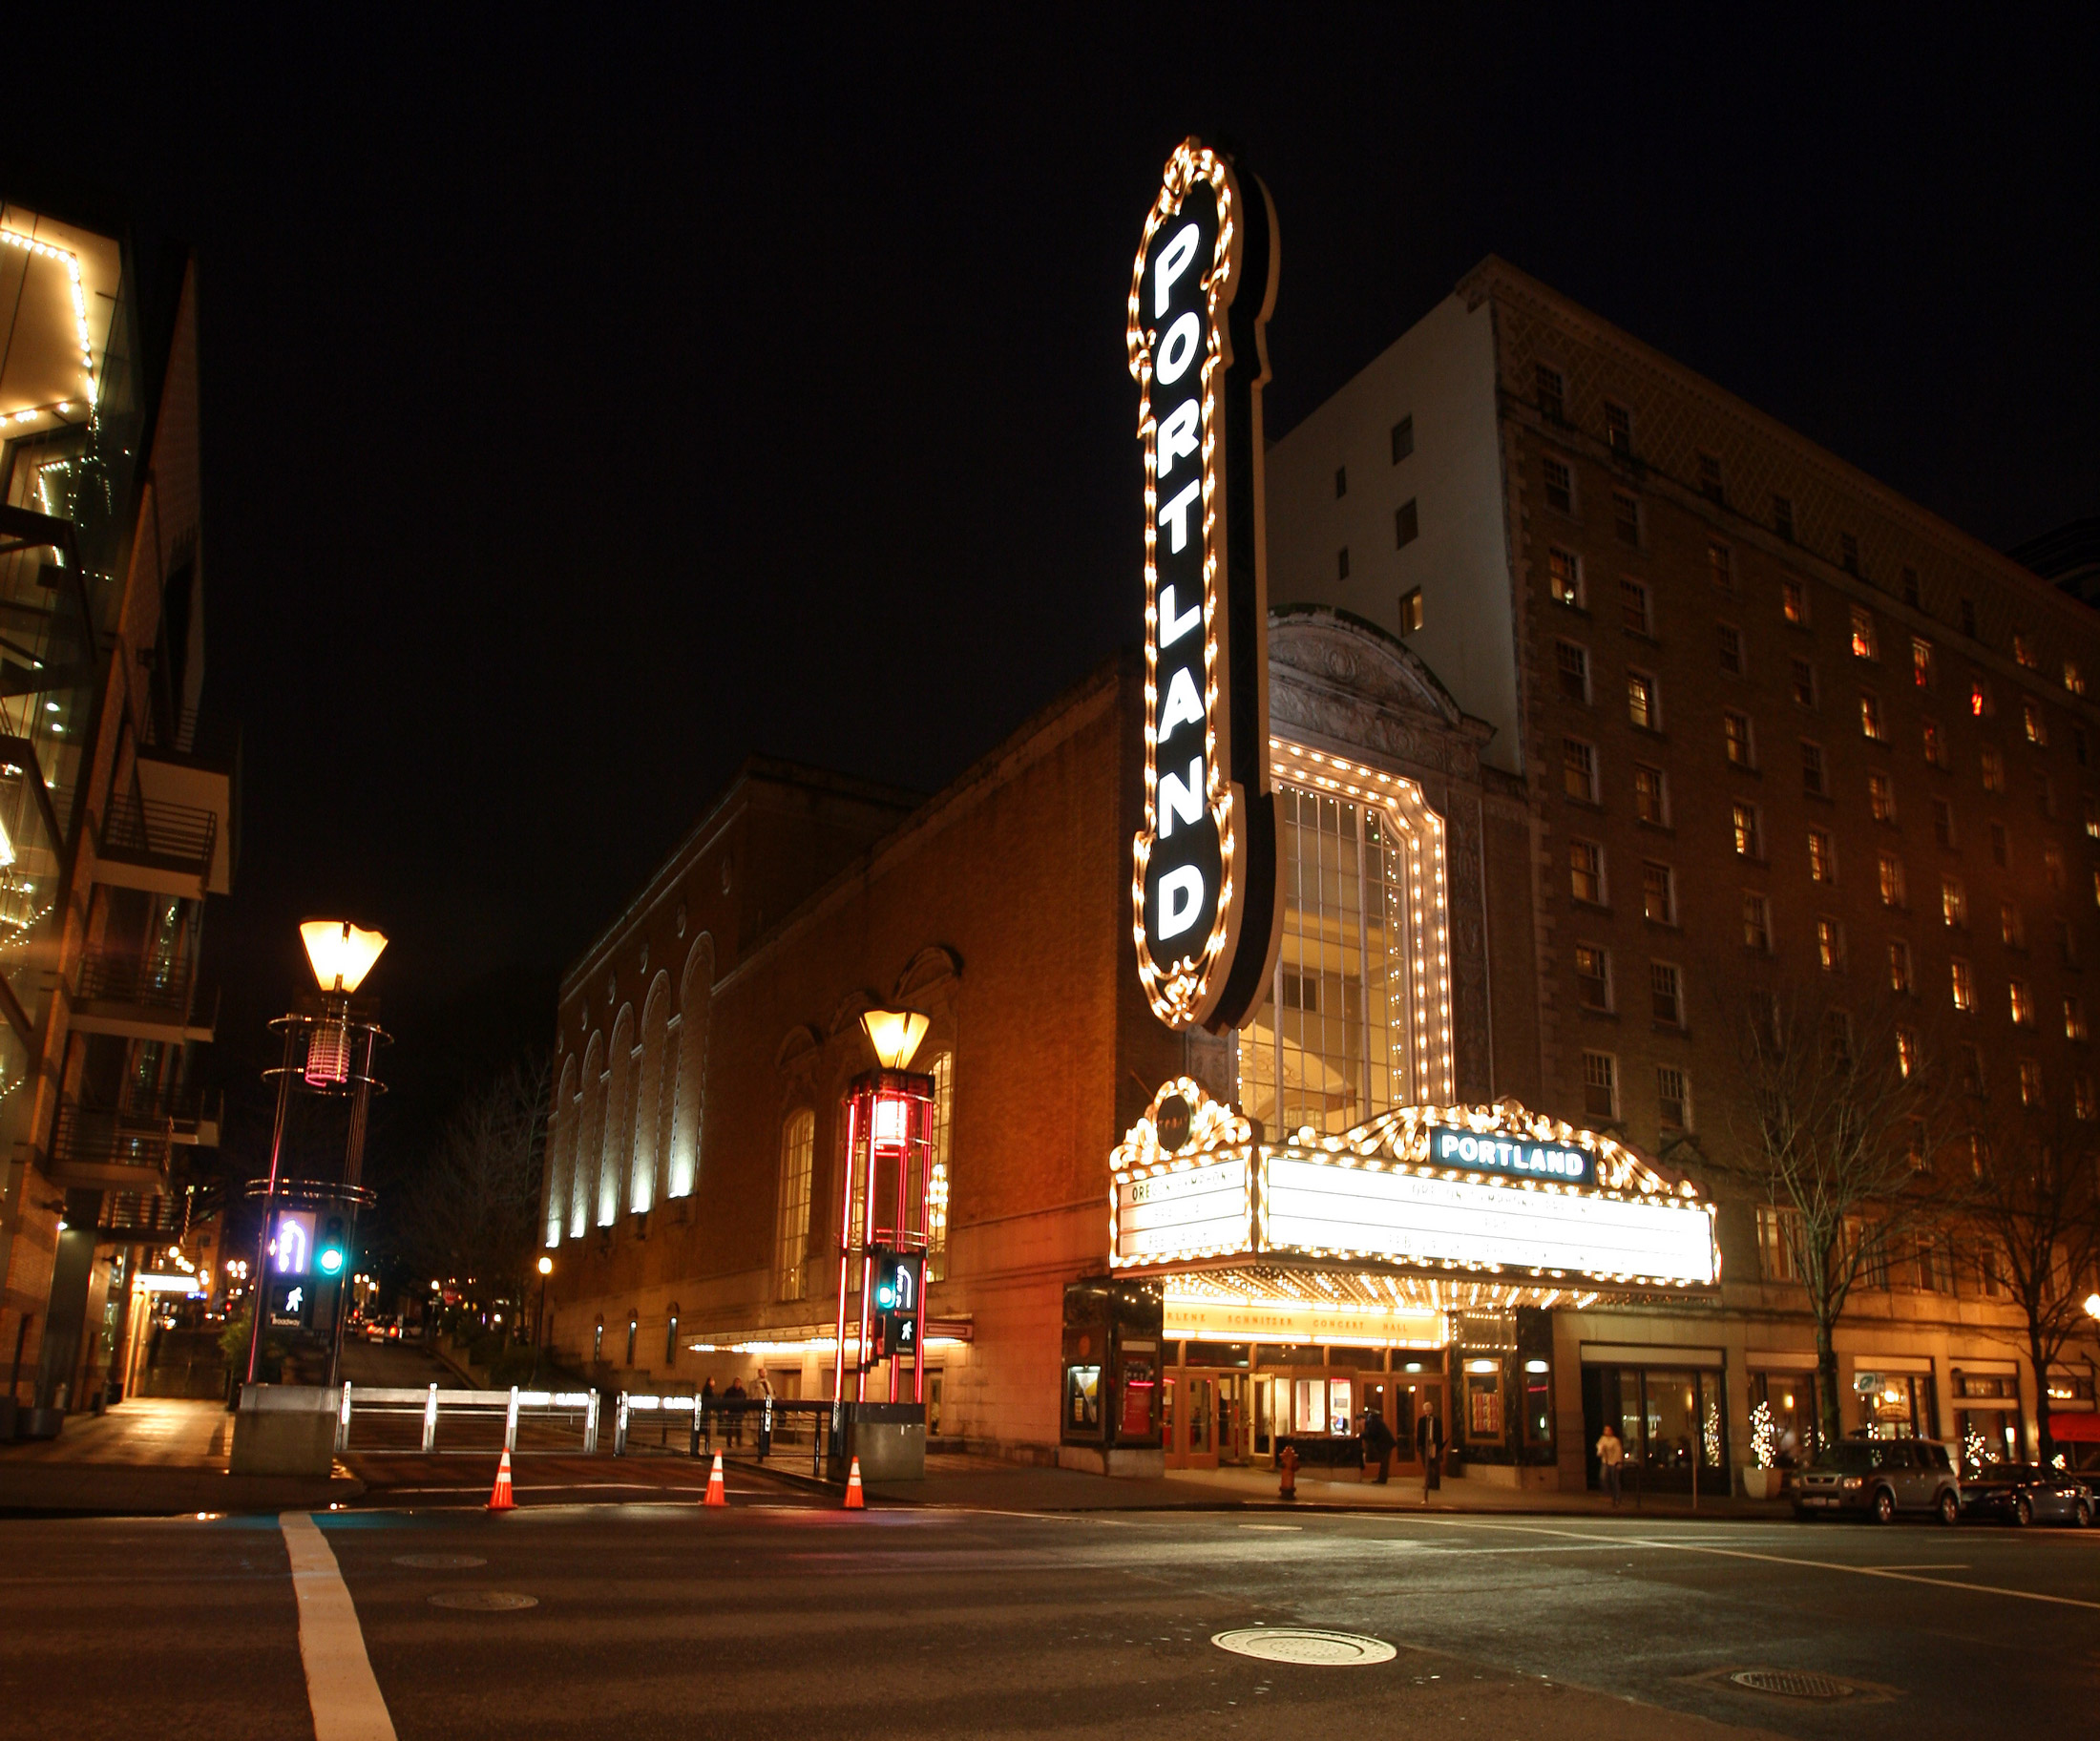 Constructed as a movie palace in 1928, this historic structure is now home to the Arlene Schnitzer Concert Hall.